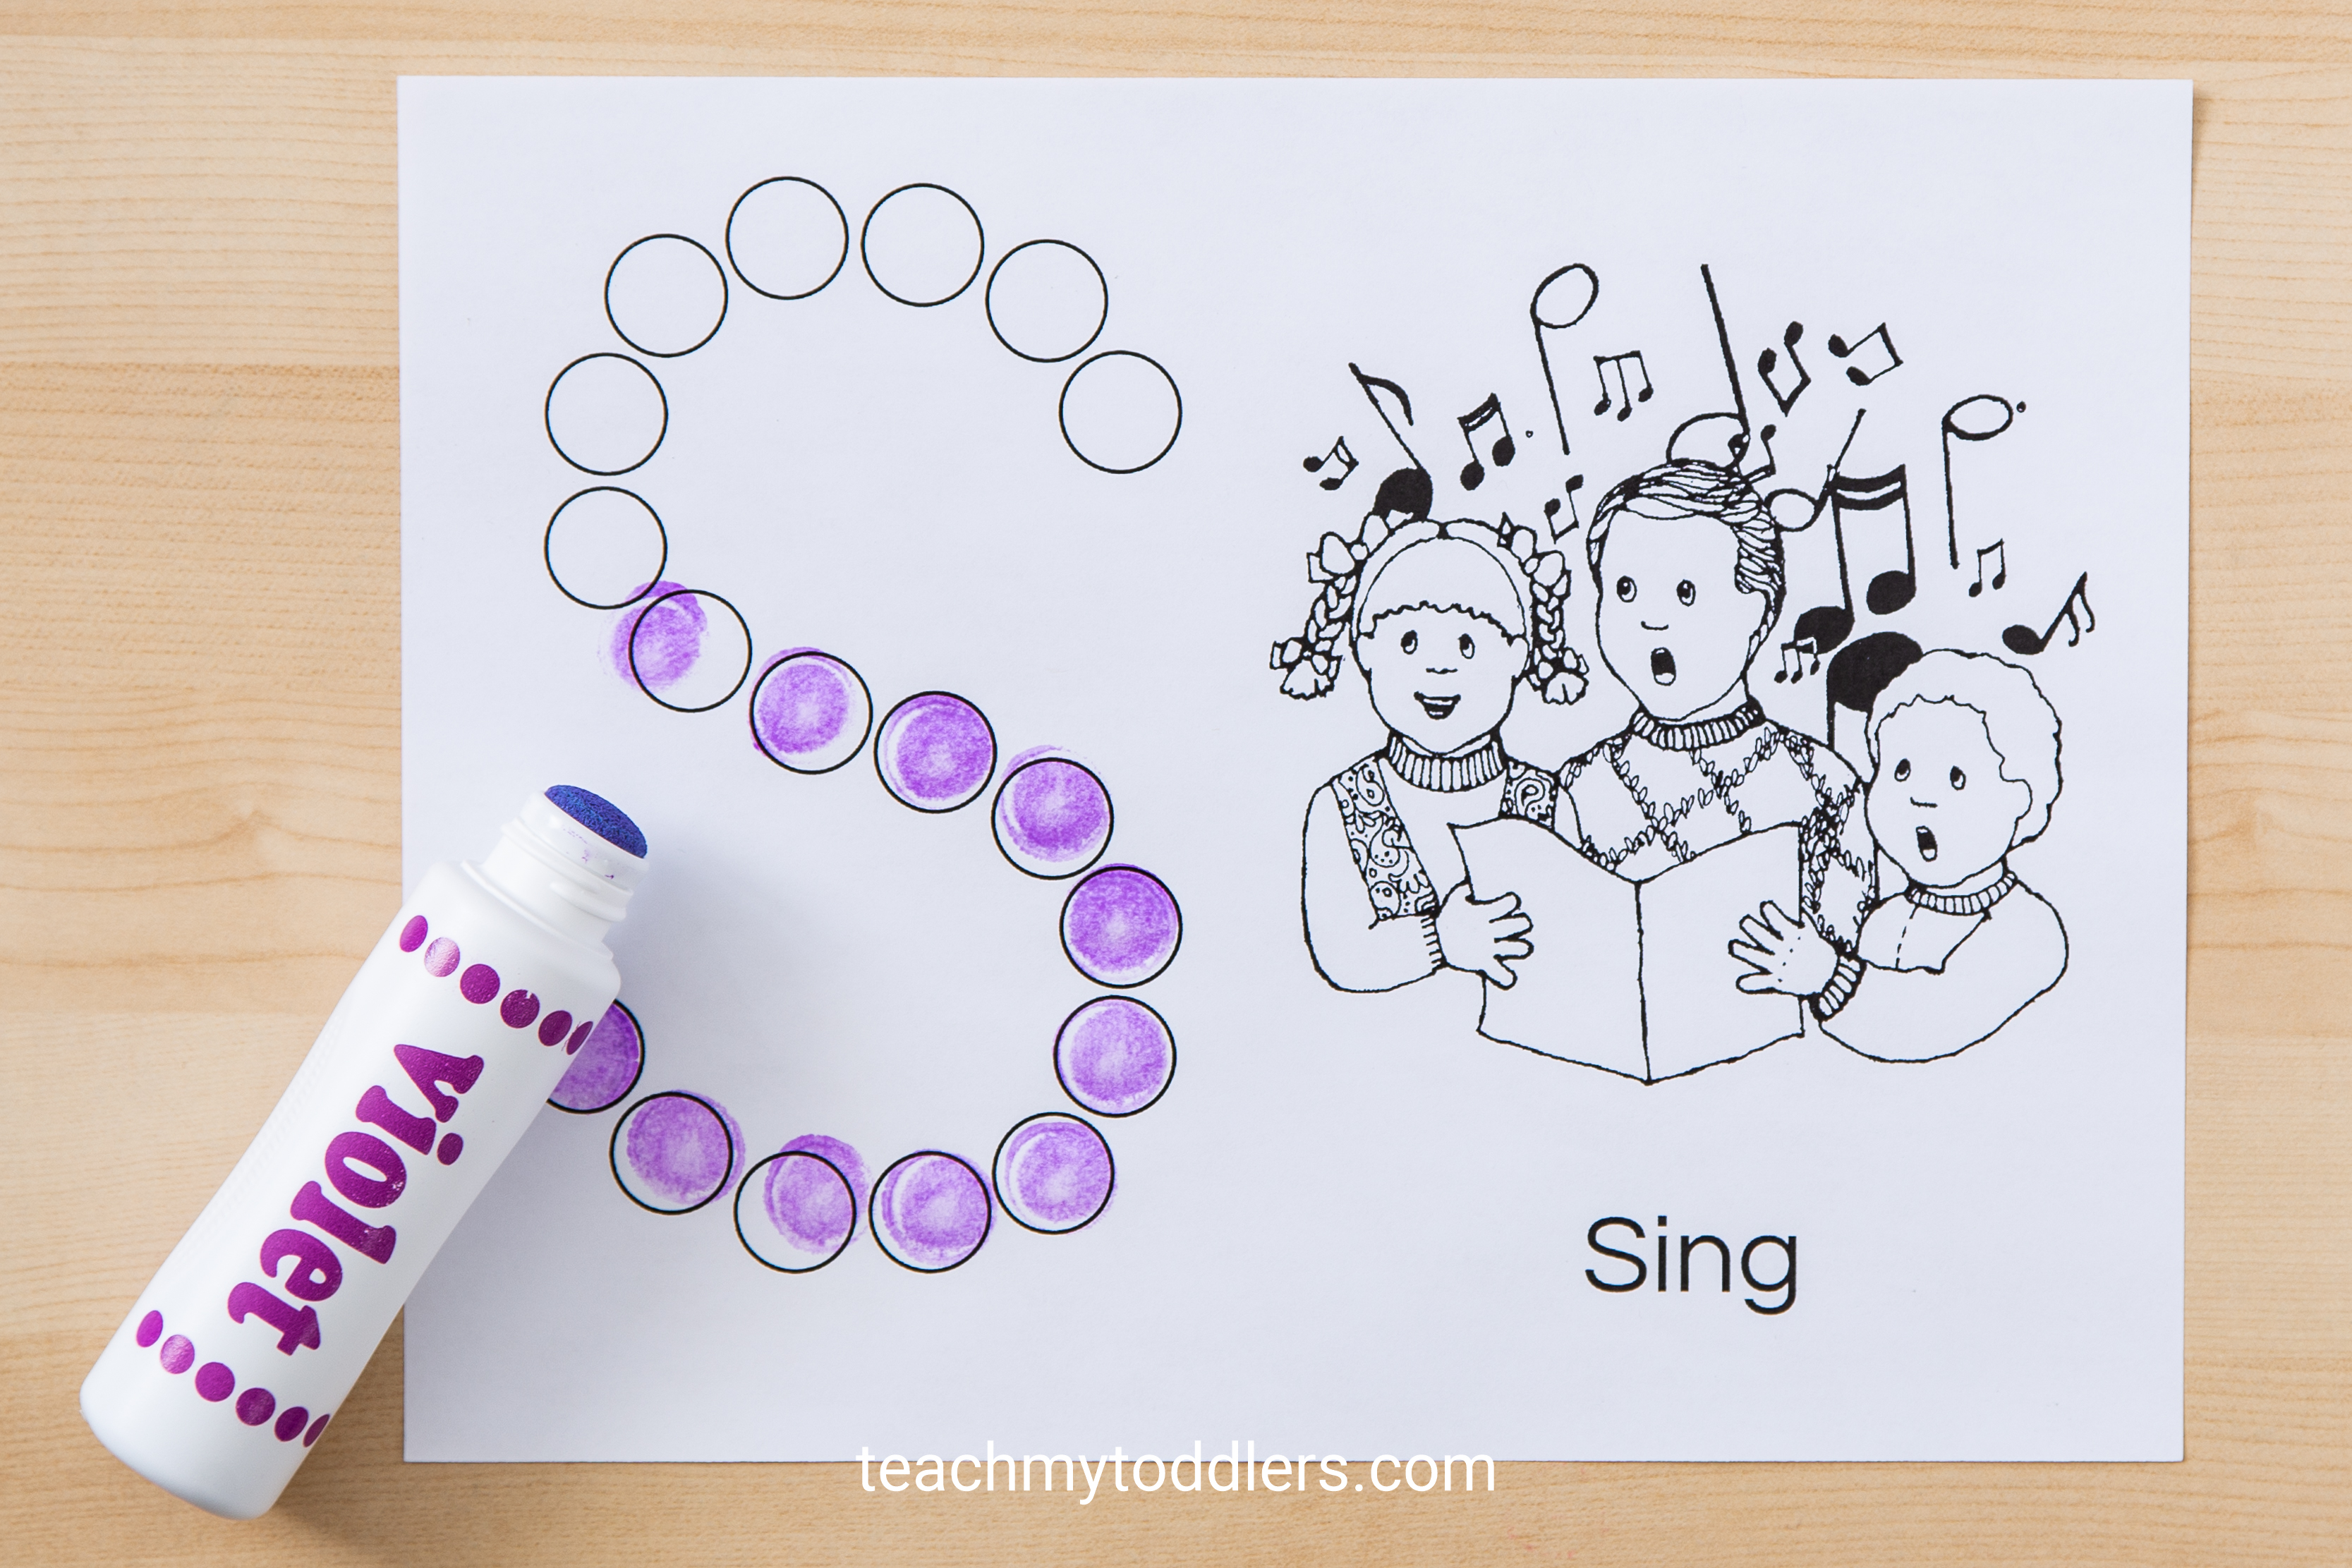 Print out these awewsome free do a dot pages for your toddlers during general conference